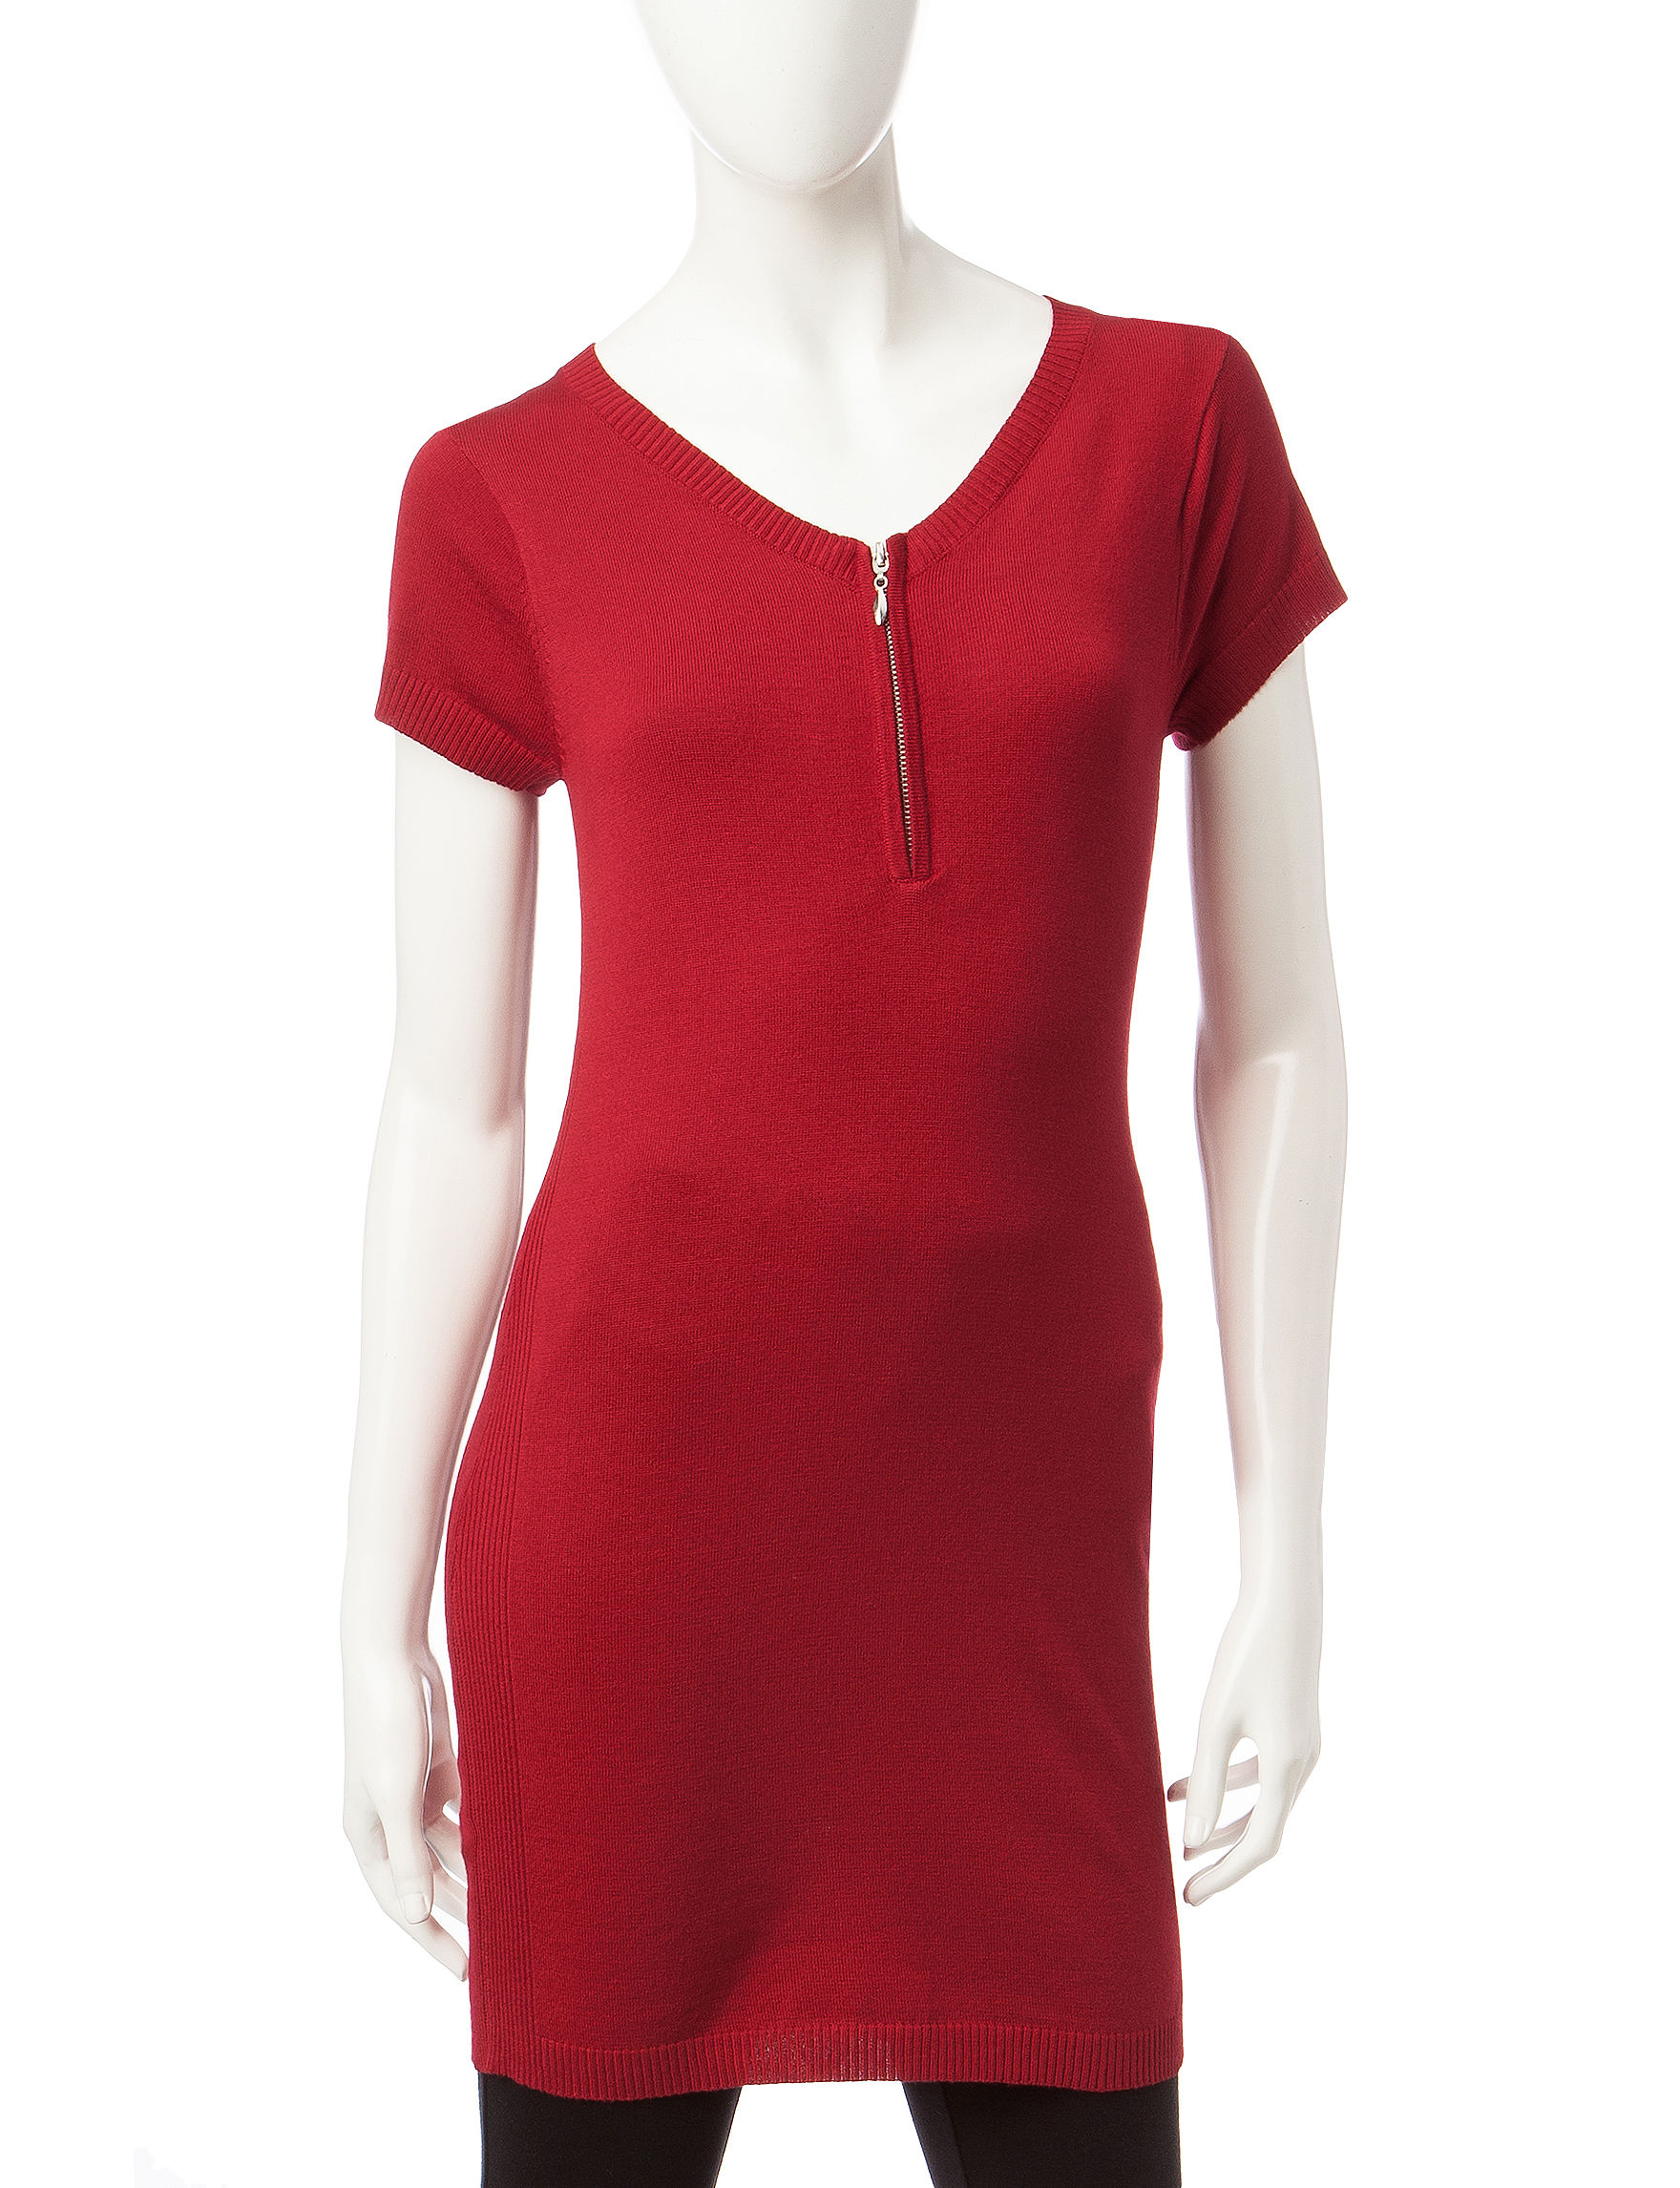 Made for Me to Look Amazing Bright Red Sweaters Tunics